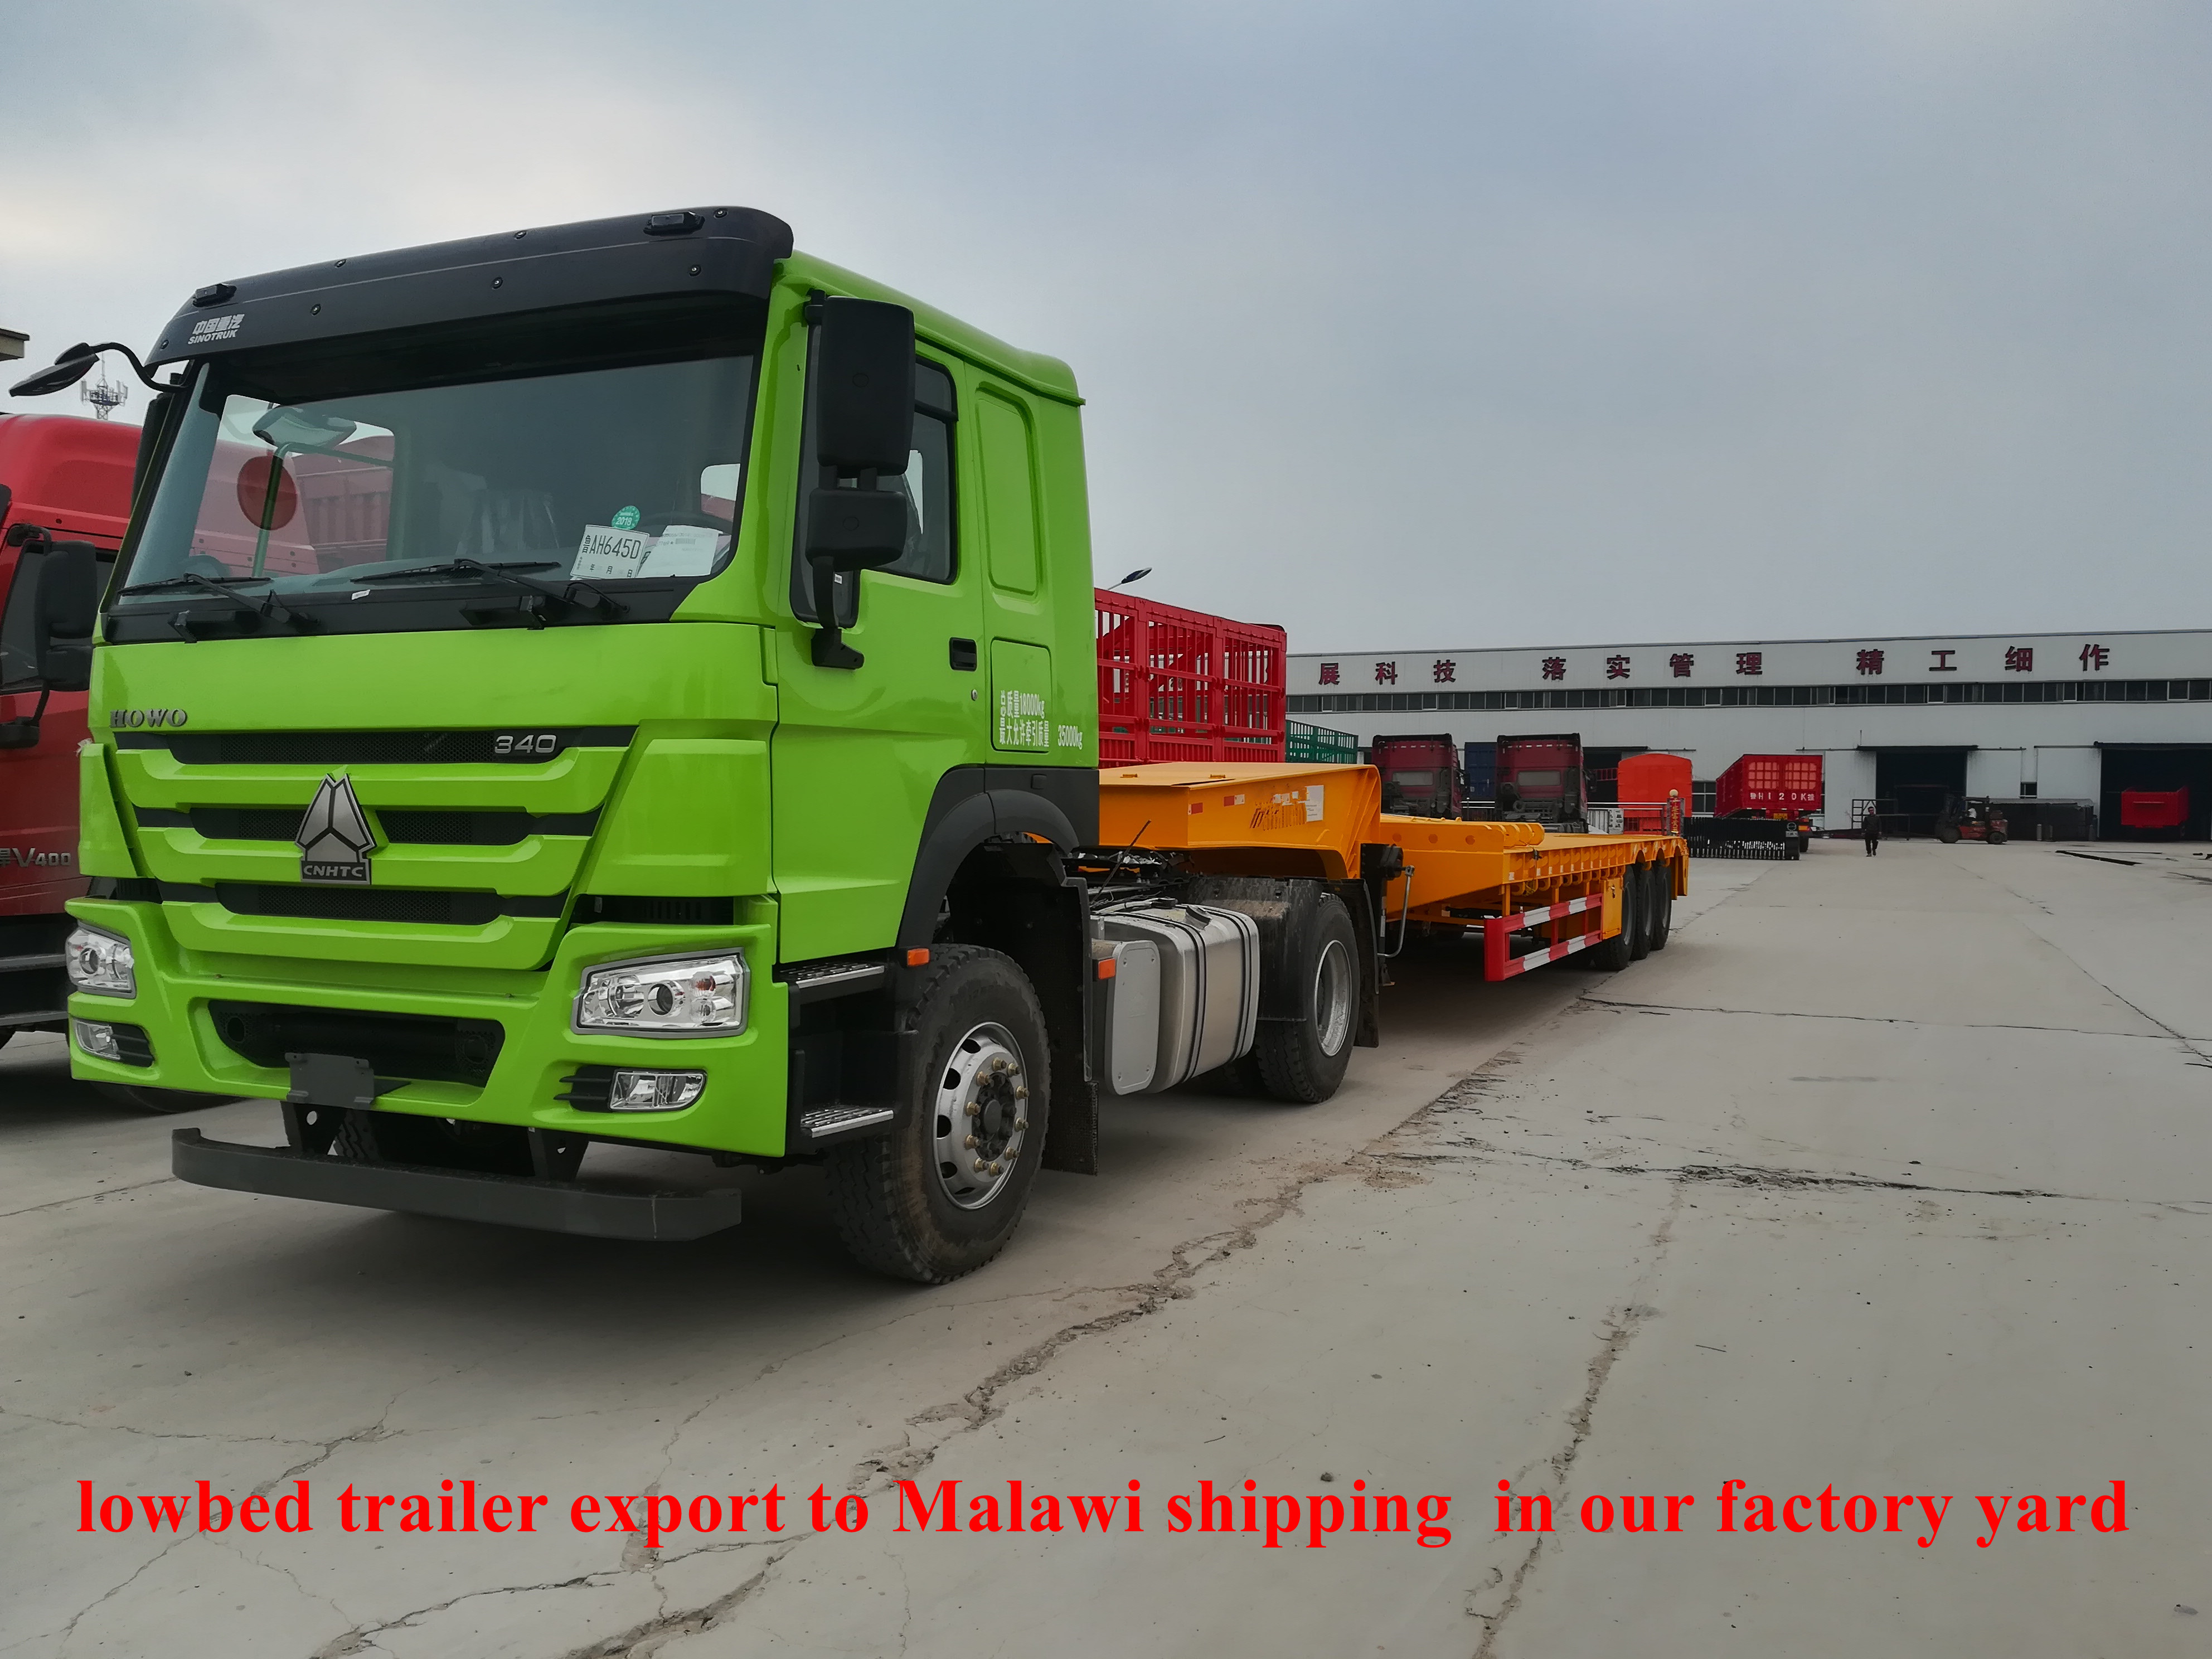 lowbed trailer export to Malawi shipping  in our factory yard on 04232018 (5).jpg